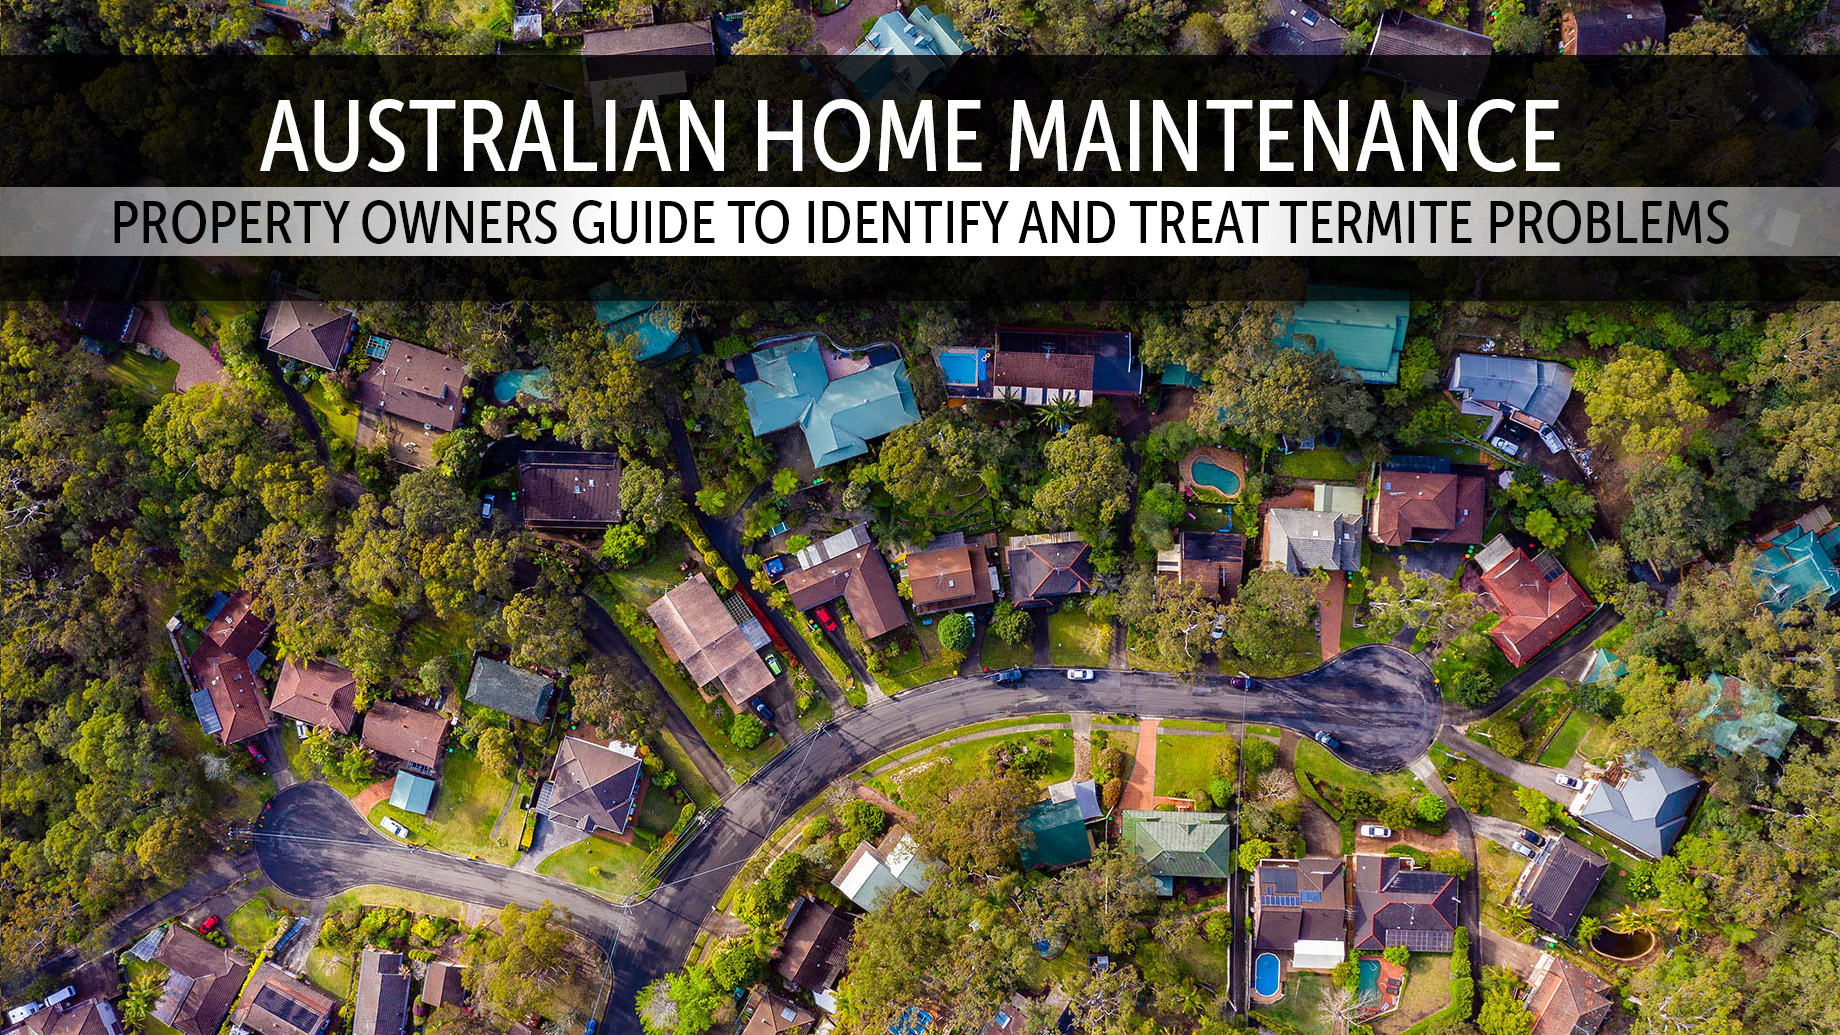 Australian Home Maintenance - Property Owners Guide To Identify and Treat Termite Problems